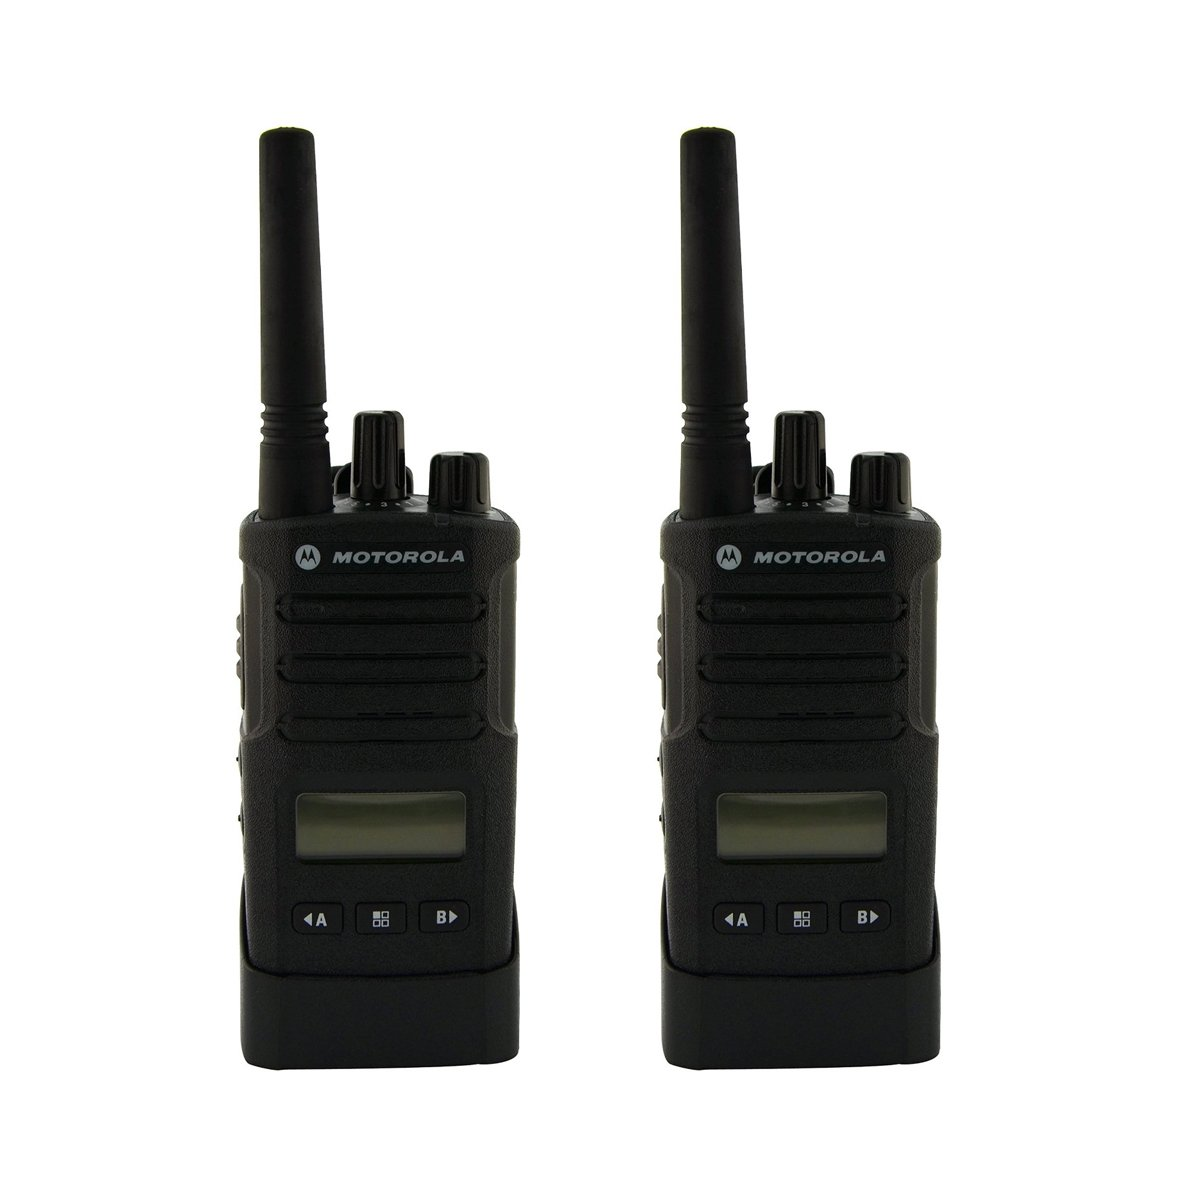 Motorola RMU2080D On-Site 8 Channel UHF Rugged Two-Way Business Radio with Display and NOAA (Black) (Two Count)